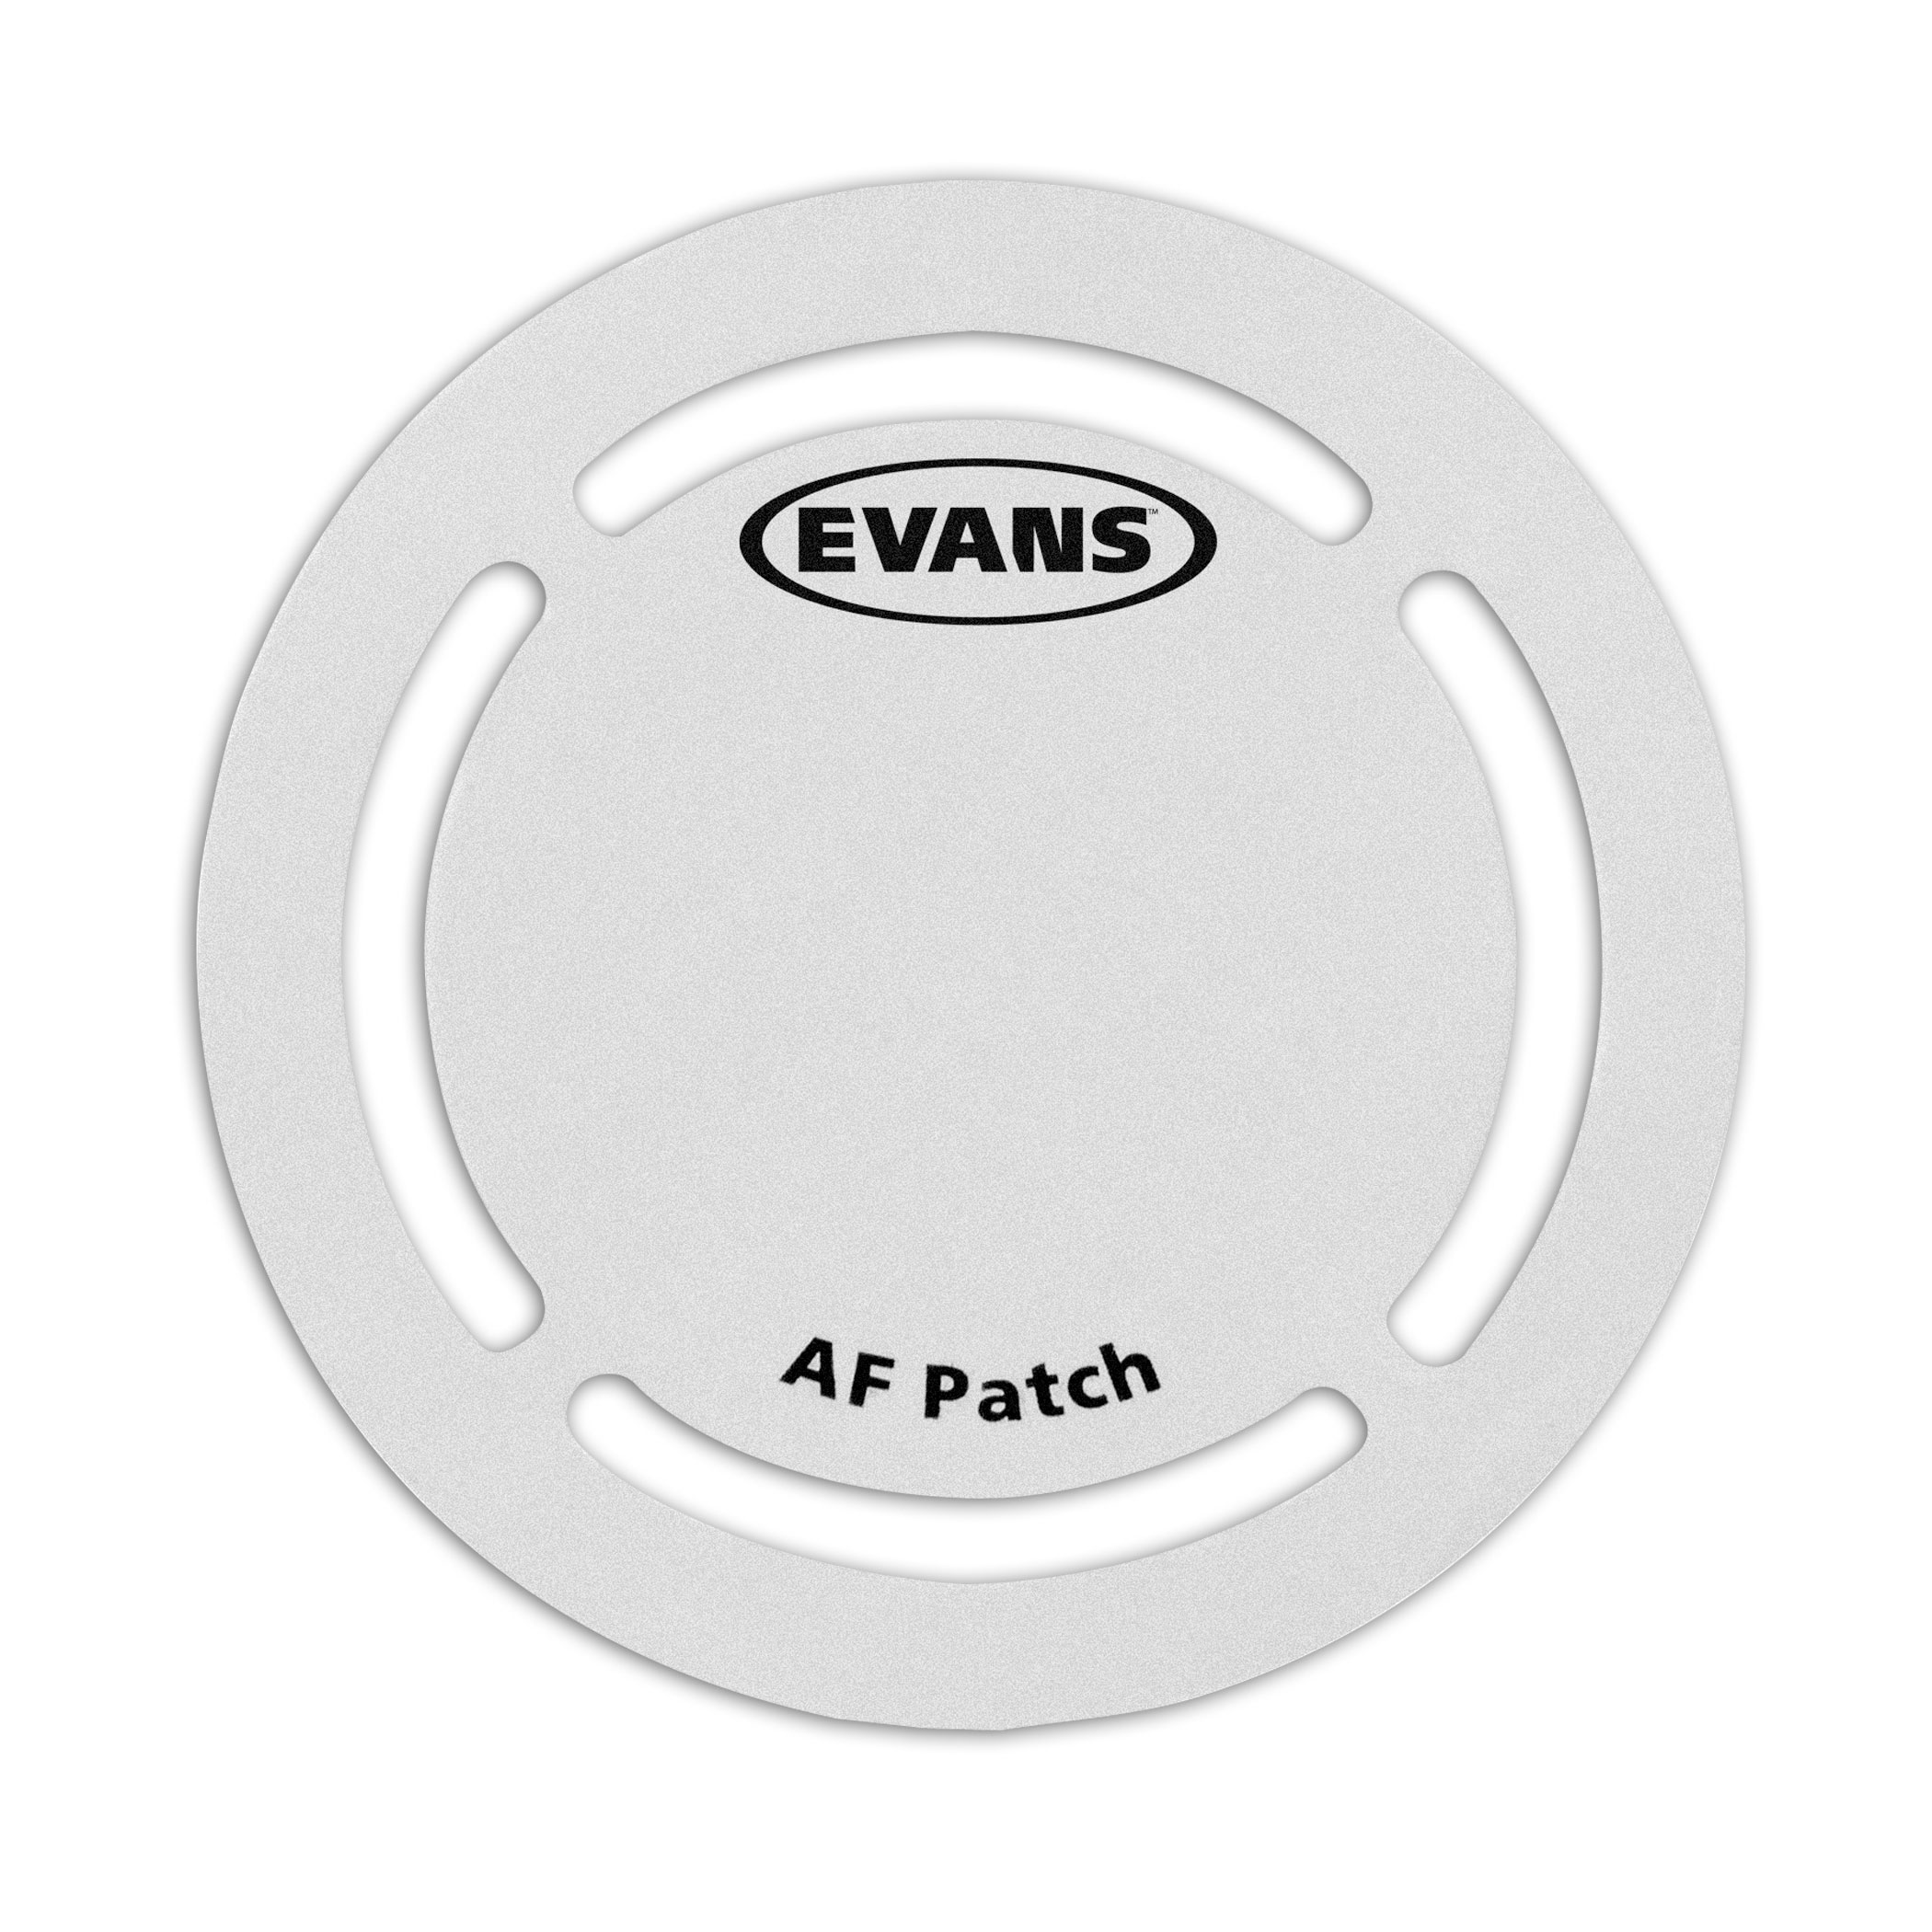 Evans Aramid Fiber Bass Patch - 2 Pack